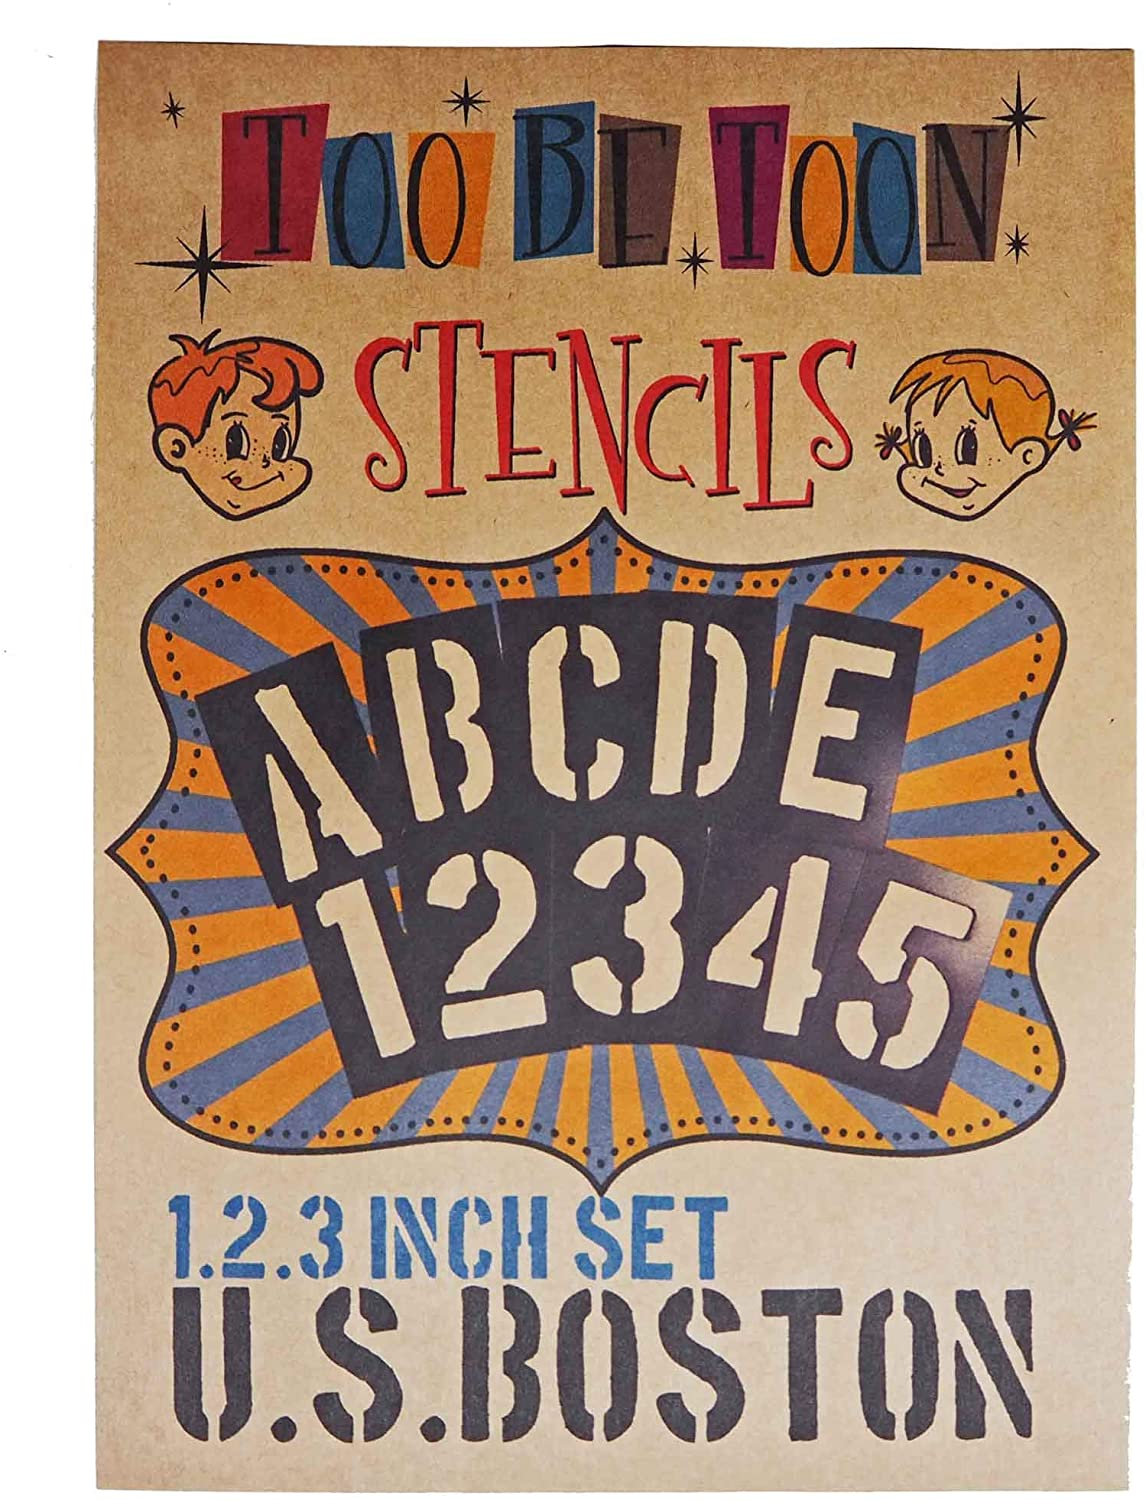 1.2.3 inch Stencil Set, Plastic Letter and Number, 240PC (U.S.Boston)